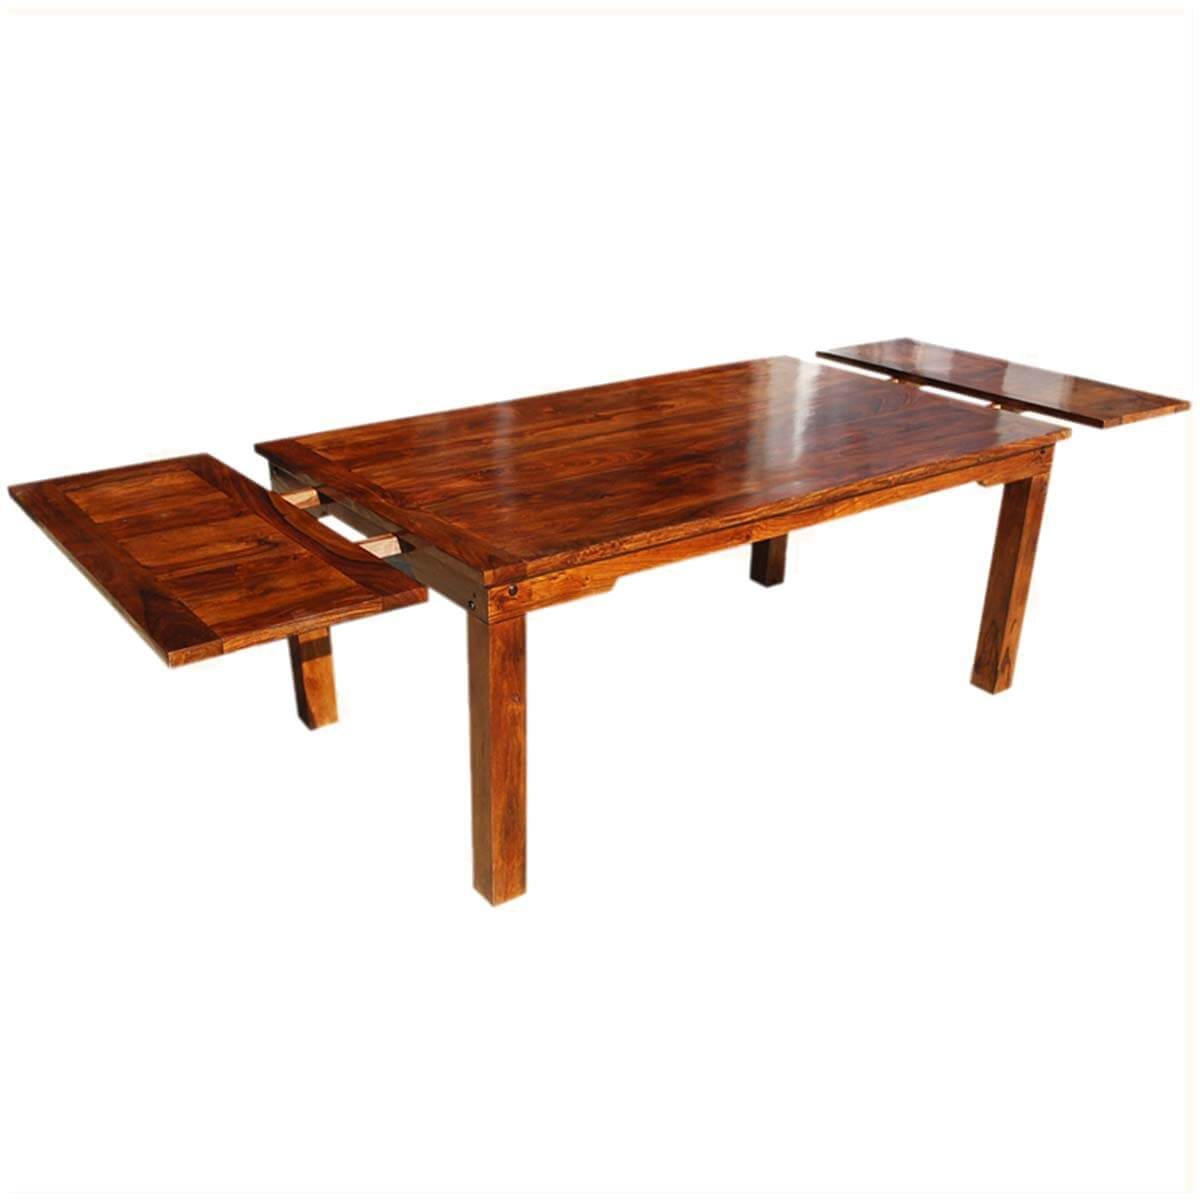 Solid Wood Transitional Dining Table And Chairs Set: Solid Wood Transitional Rustic Dining Table W Extensions